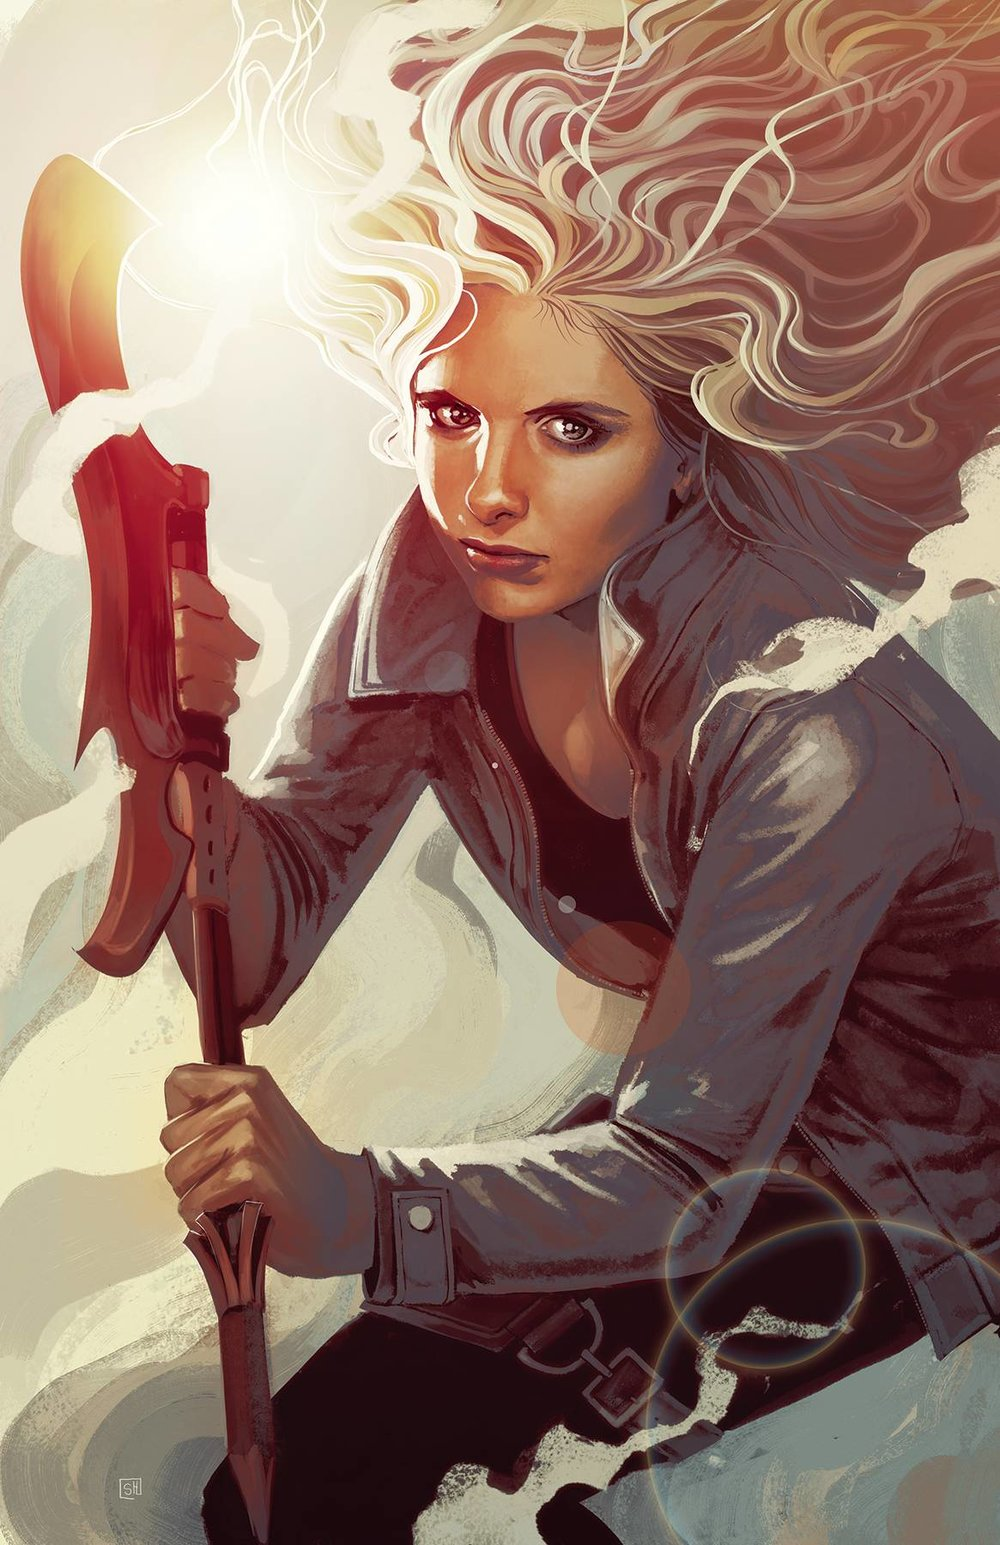 BUFFY THE VAMPIRE SLAYER SEASON 12 THE RECKONING #1